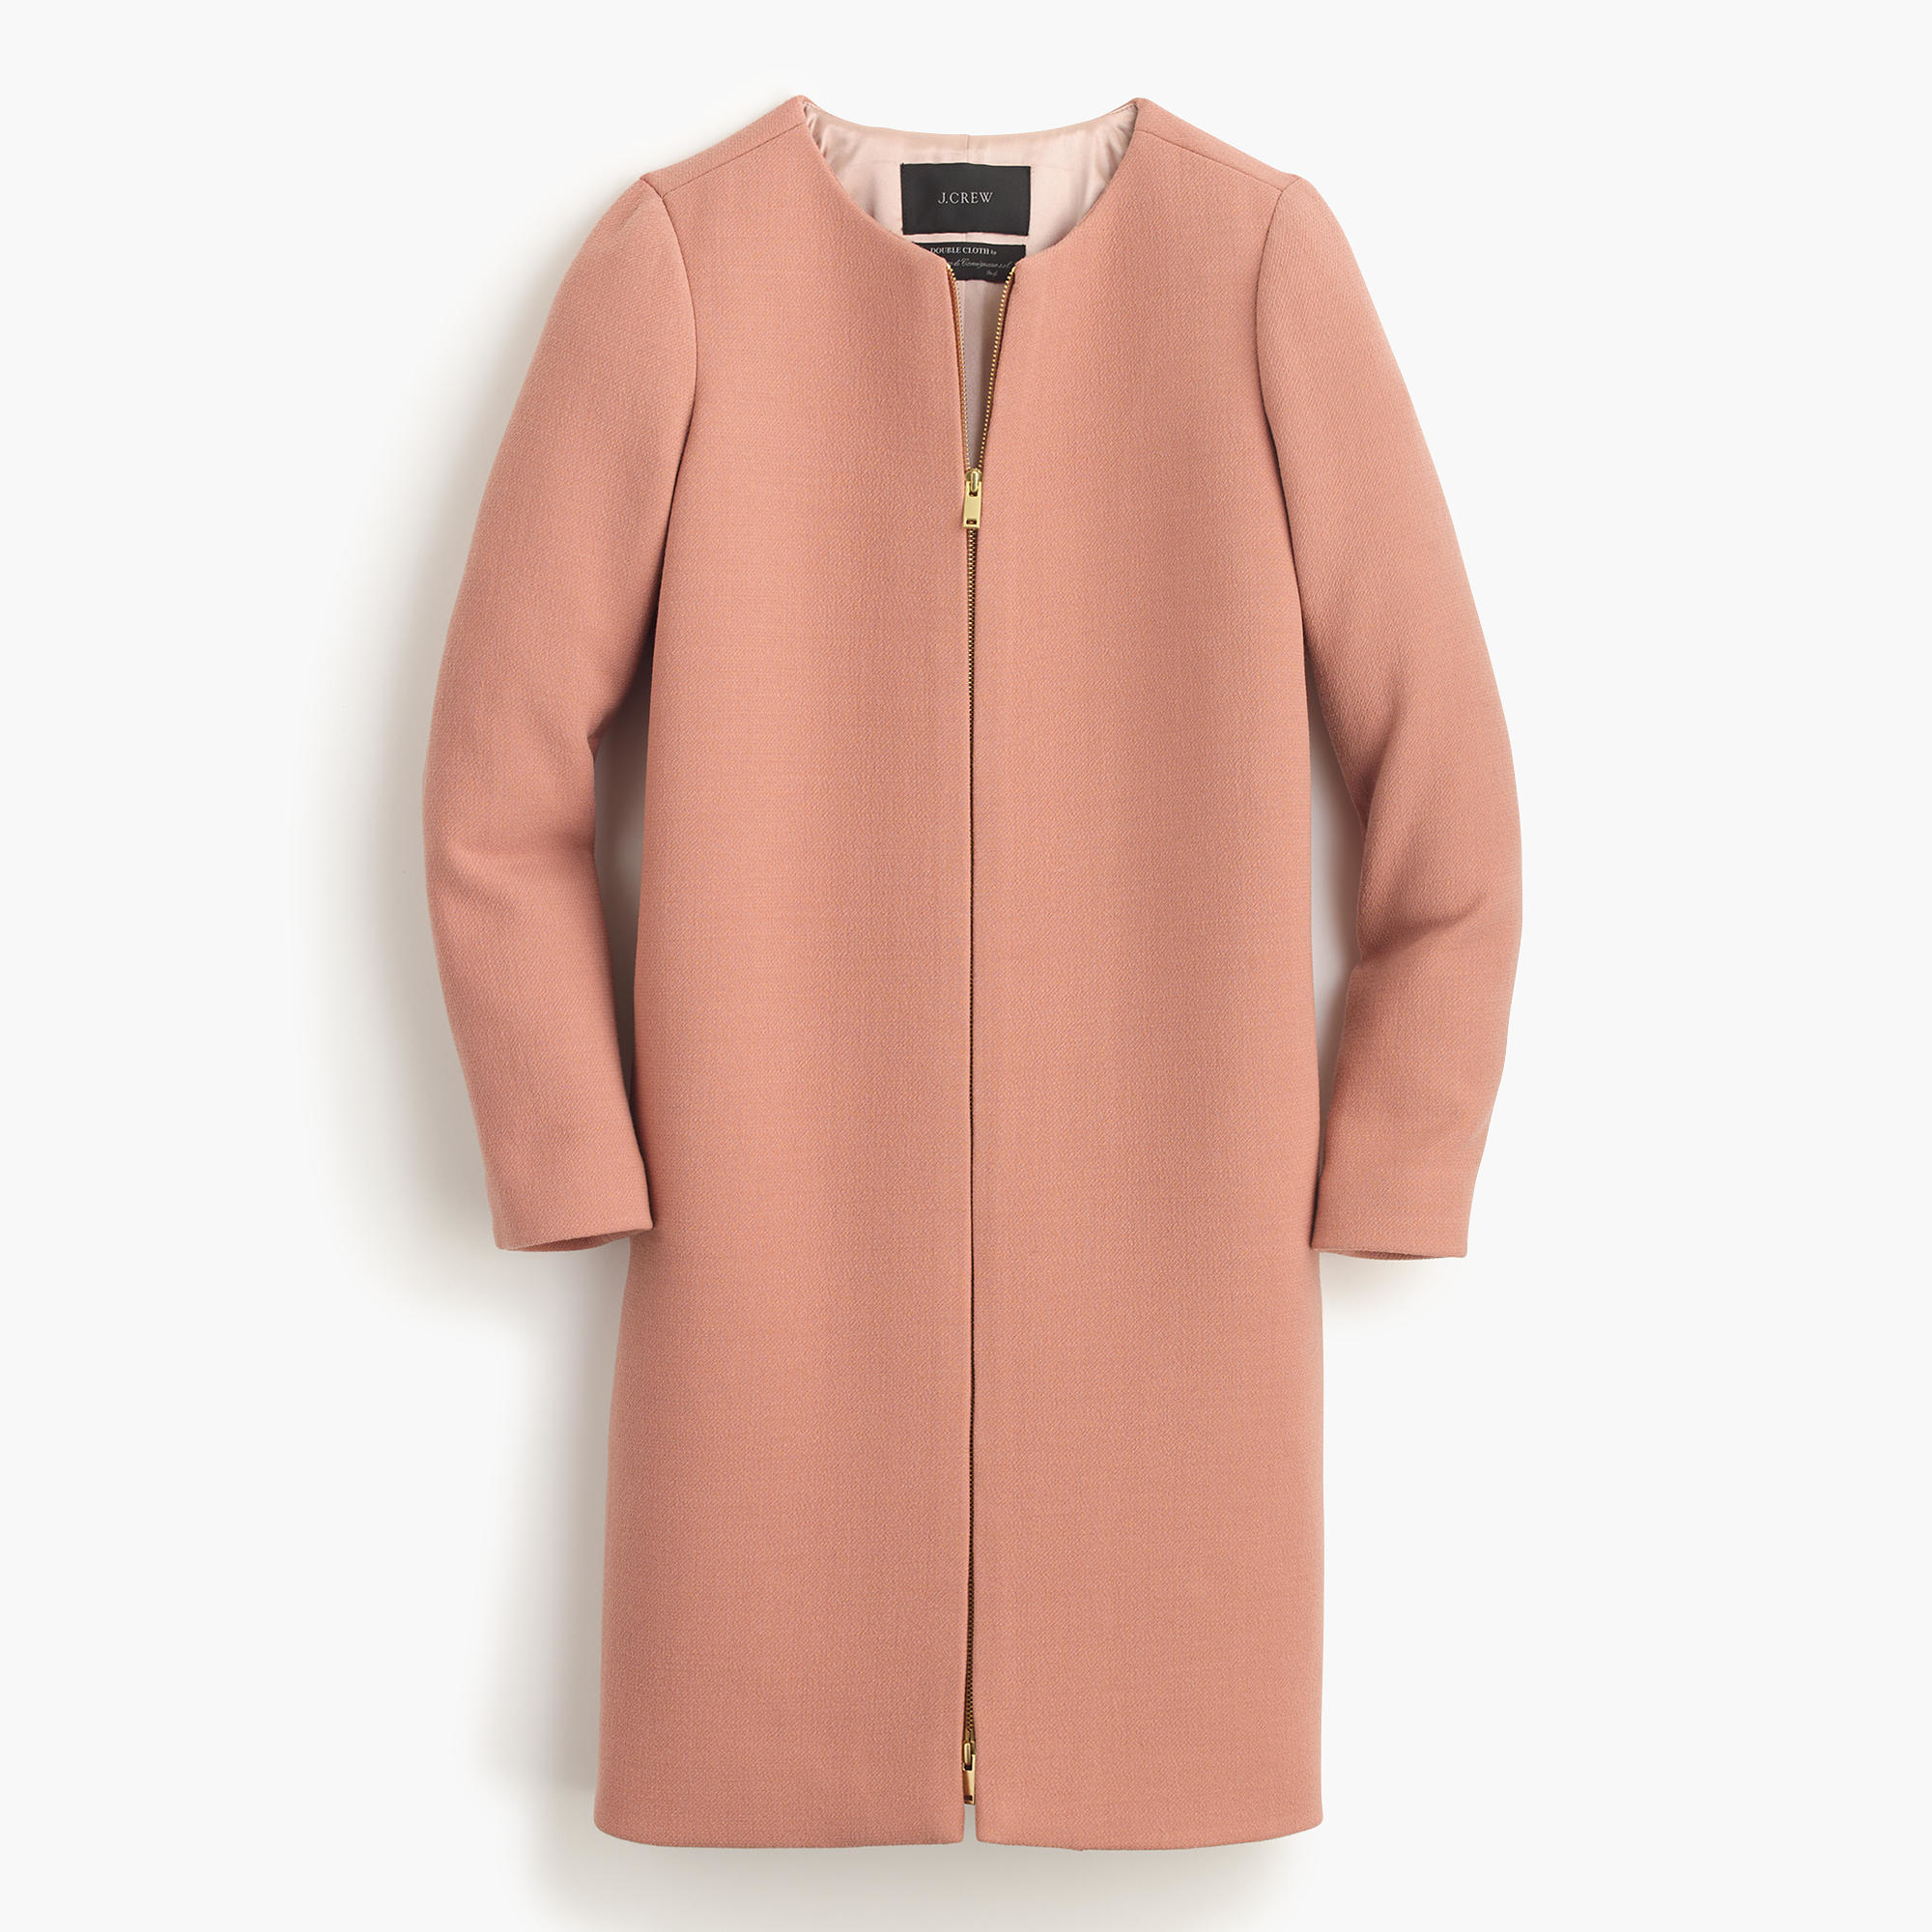 Jcrew frosted taupe double cloth collarless coat brown product 0 565292321 normal